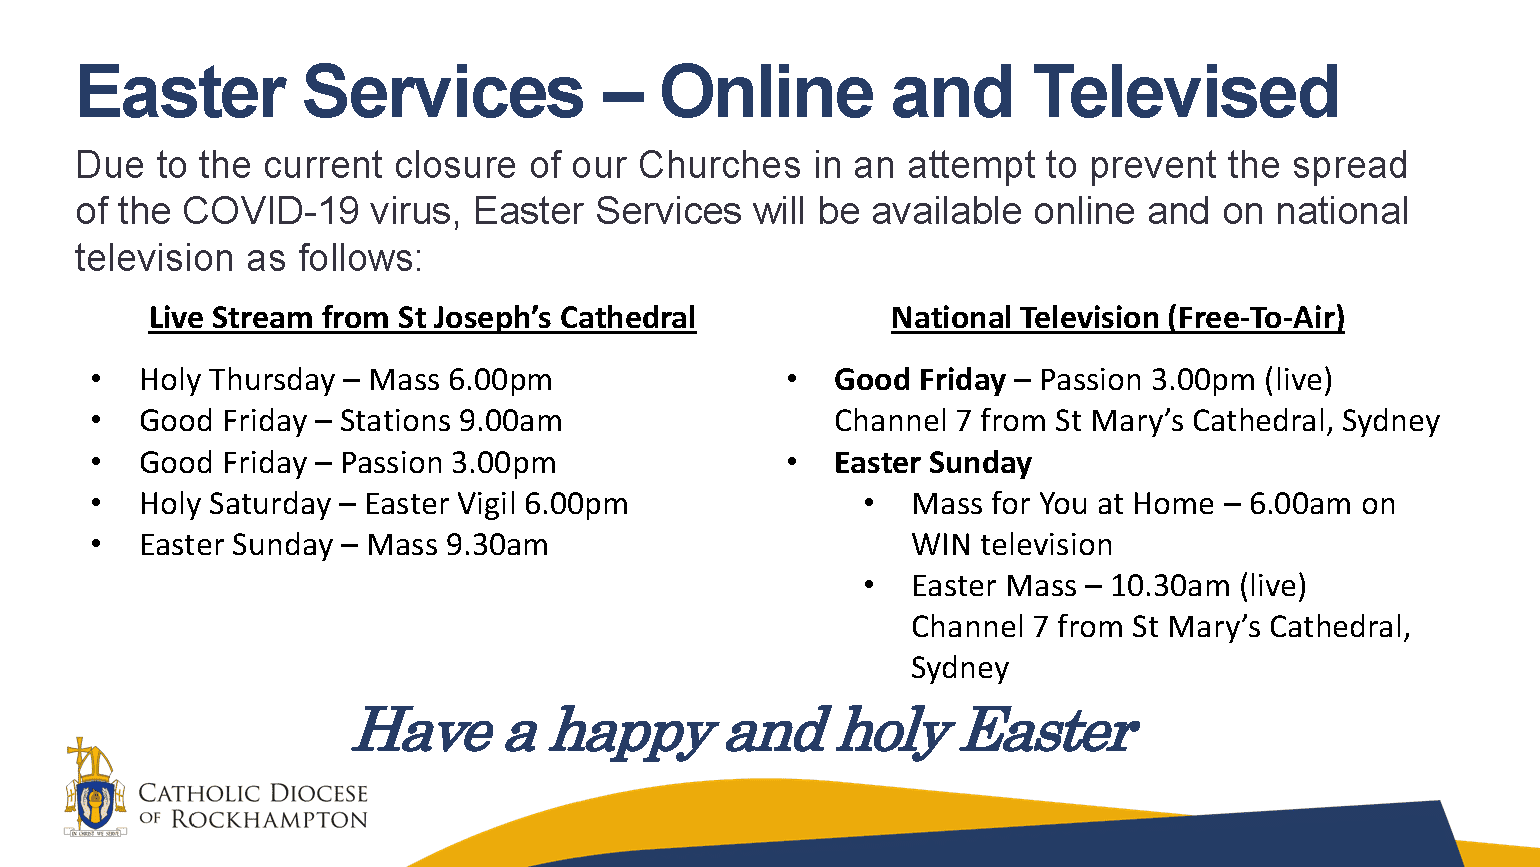 Easter Services - Online and Televised